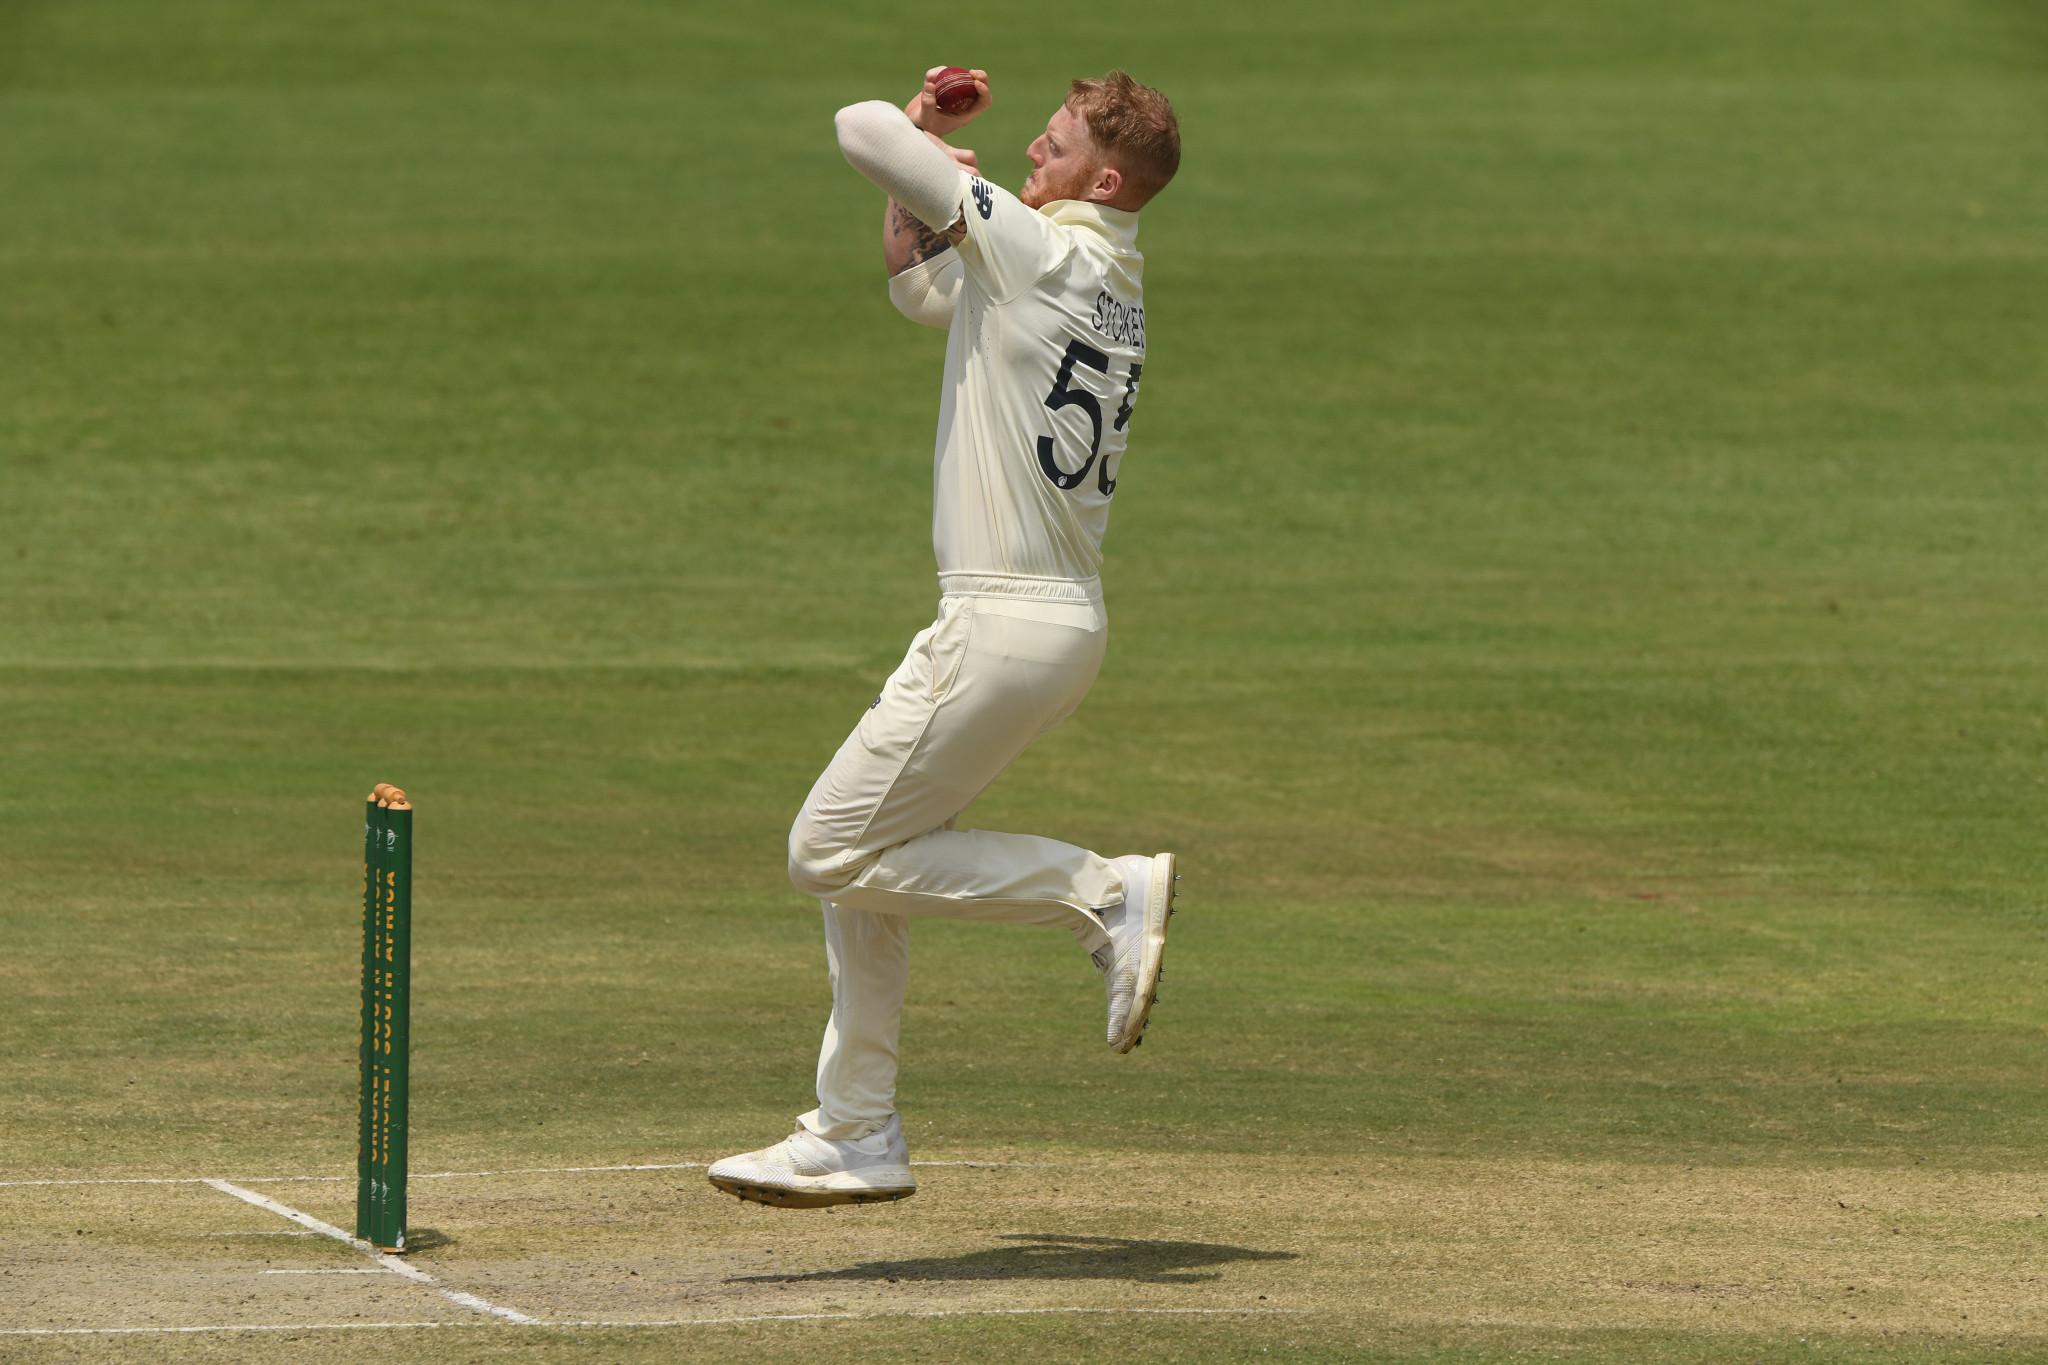 Ben Stokes won the main award at the BBC Sports Personality of the Year awards ©Getty Images